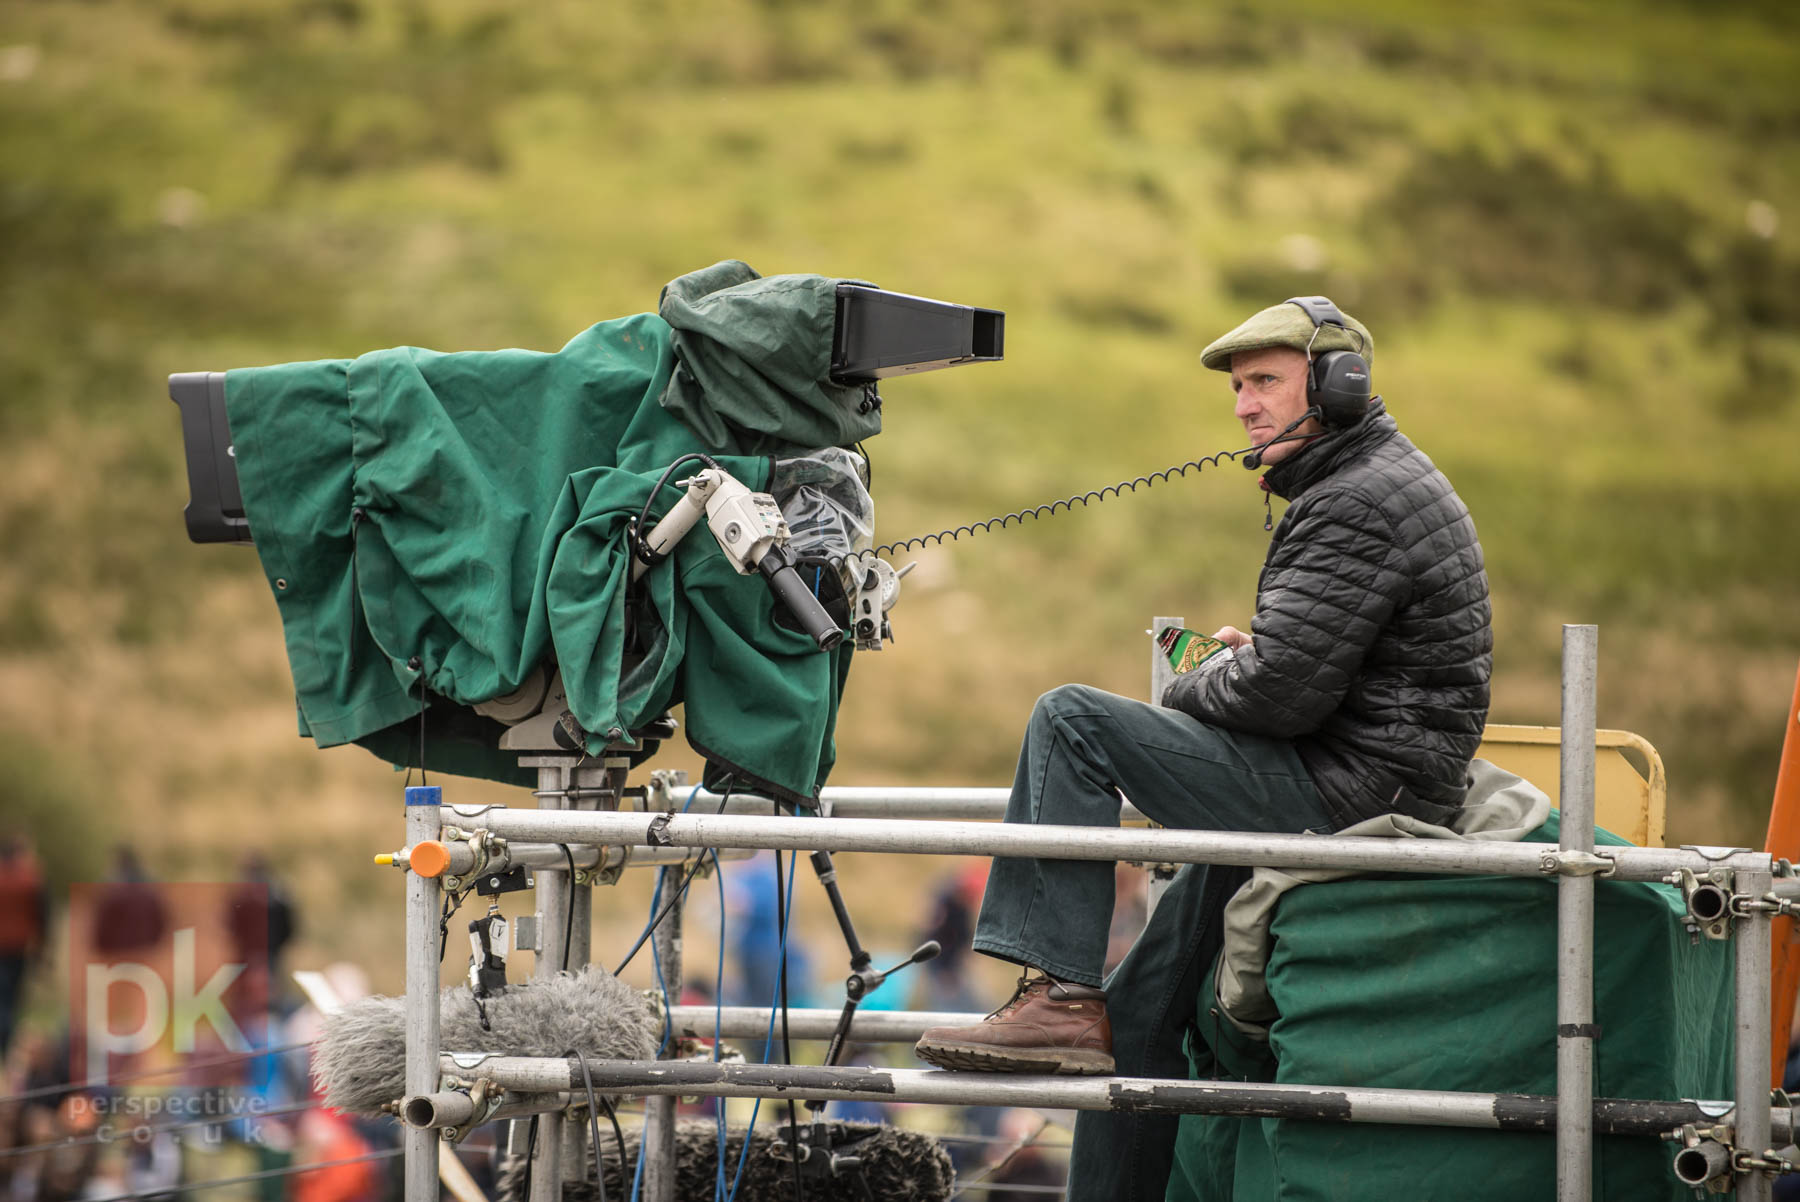 Camera man looking a bit bored inbetween Touring Car races at Knockhill.